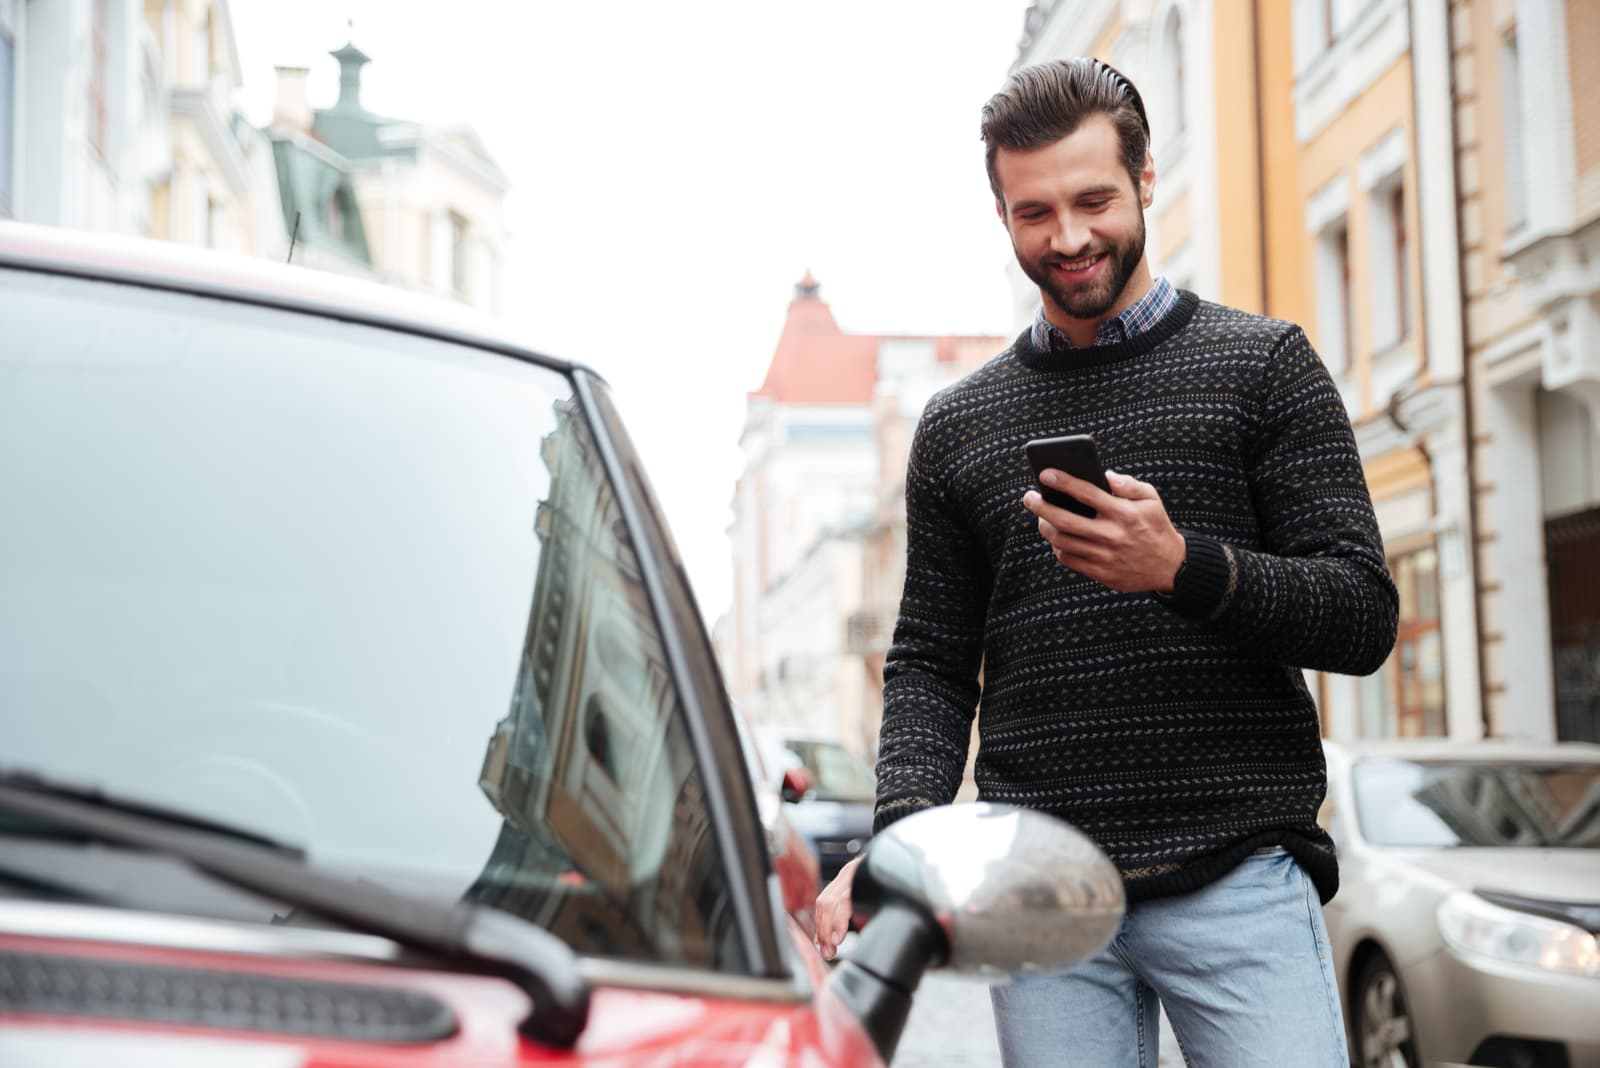 Portrait of a satisfied young man in sweater using mobile phone